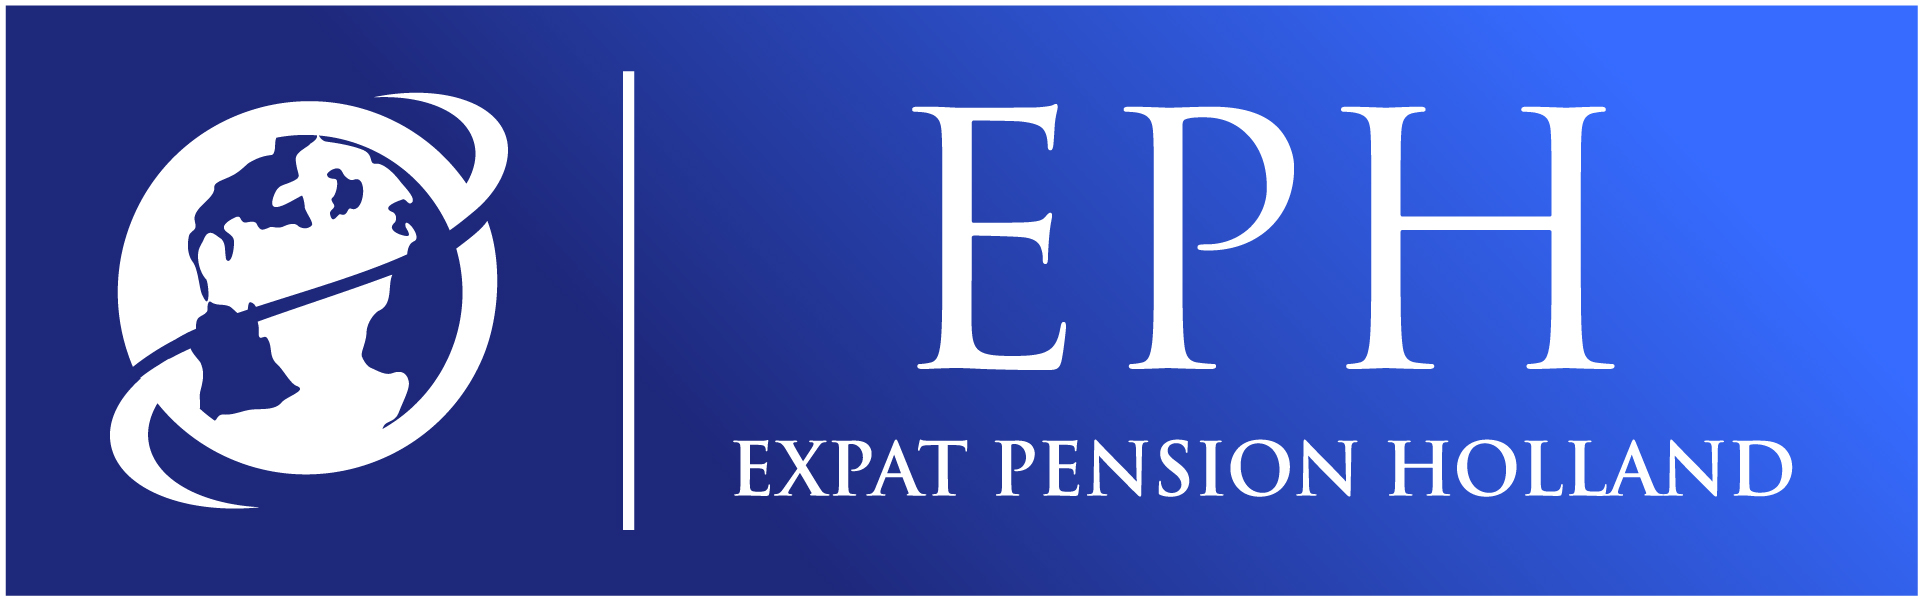 logo expat pension holland